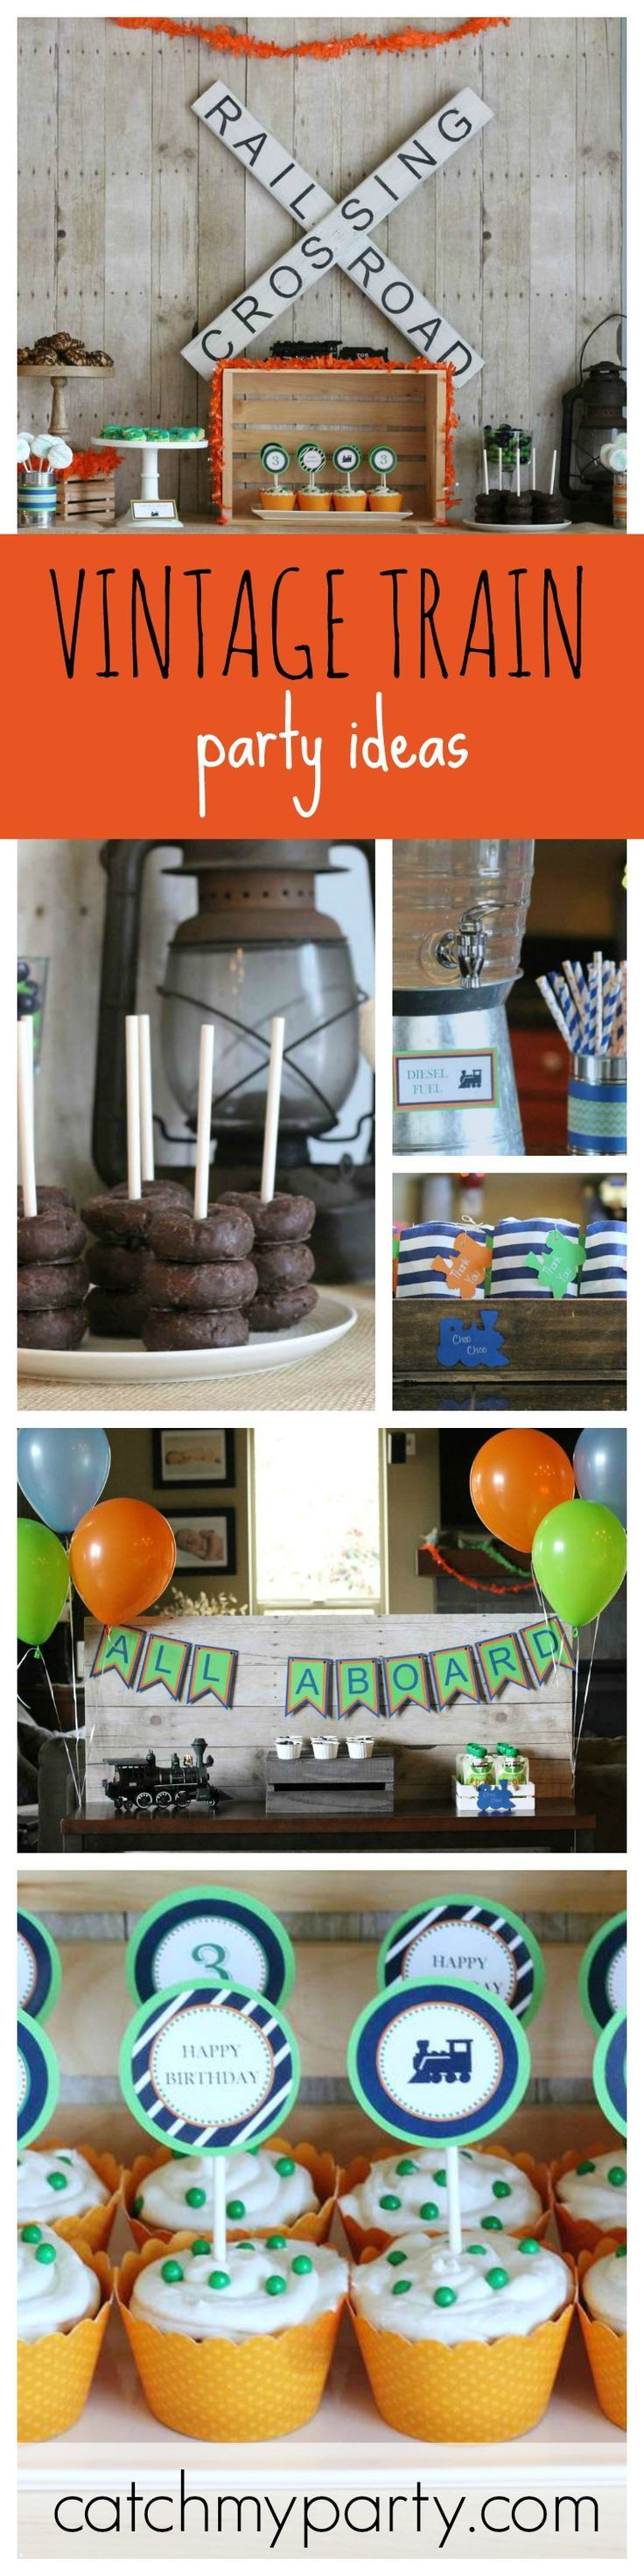 All Aboard this Fun Vintage Train Birthday Party Express! Such cute Cup Cake Toppers.